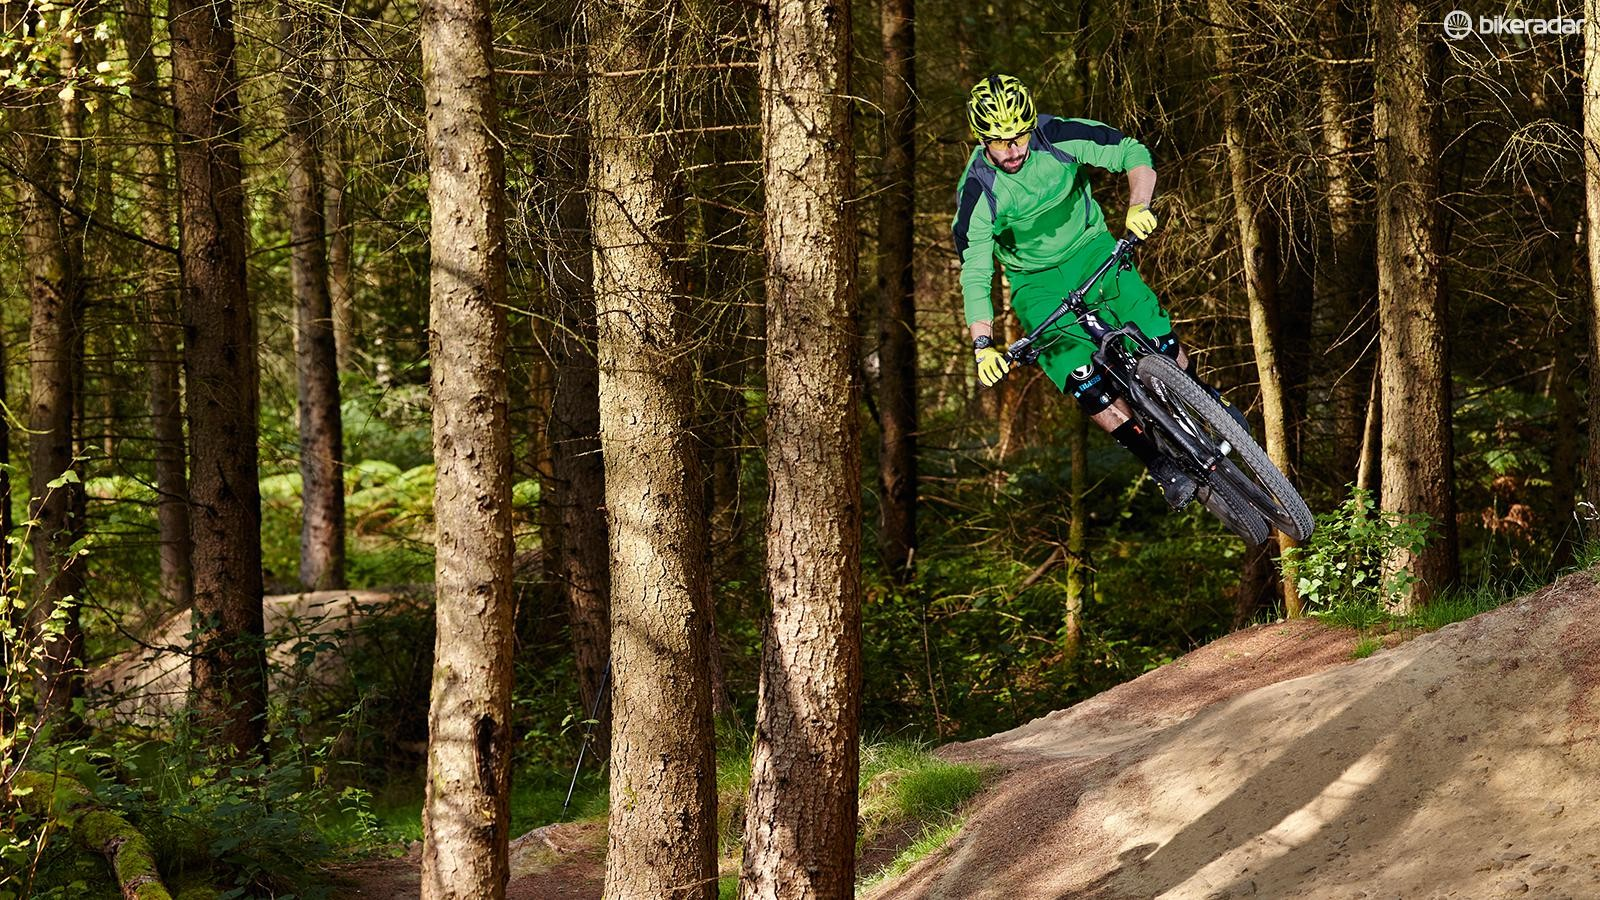 The Stumpy's well-balanced chassis delivers a satisfying balance of stability and fun